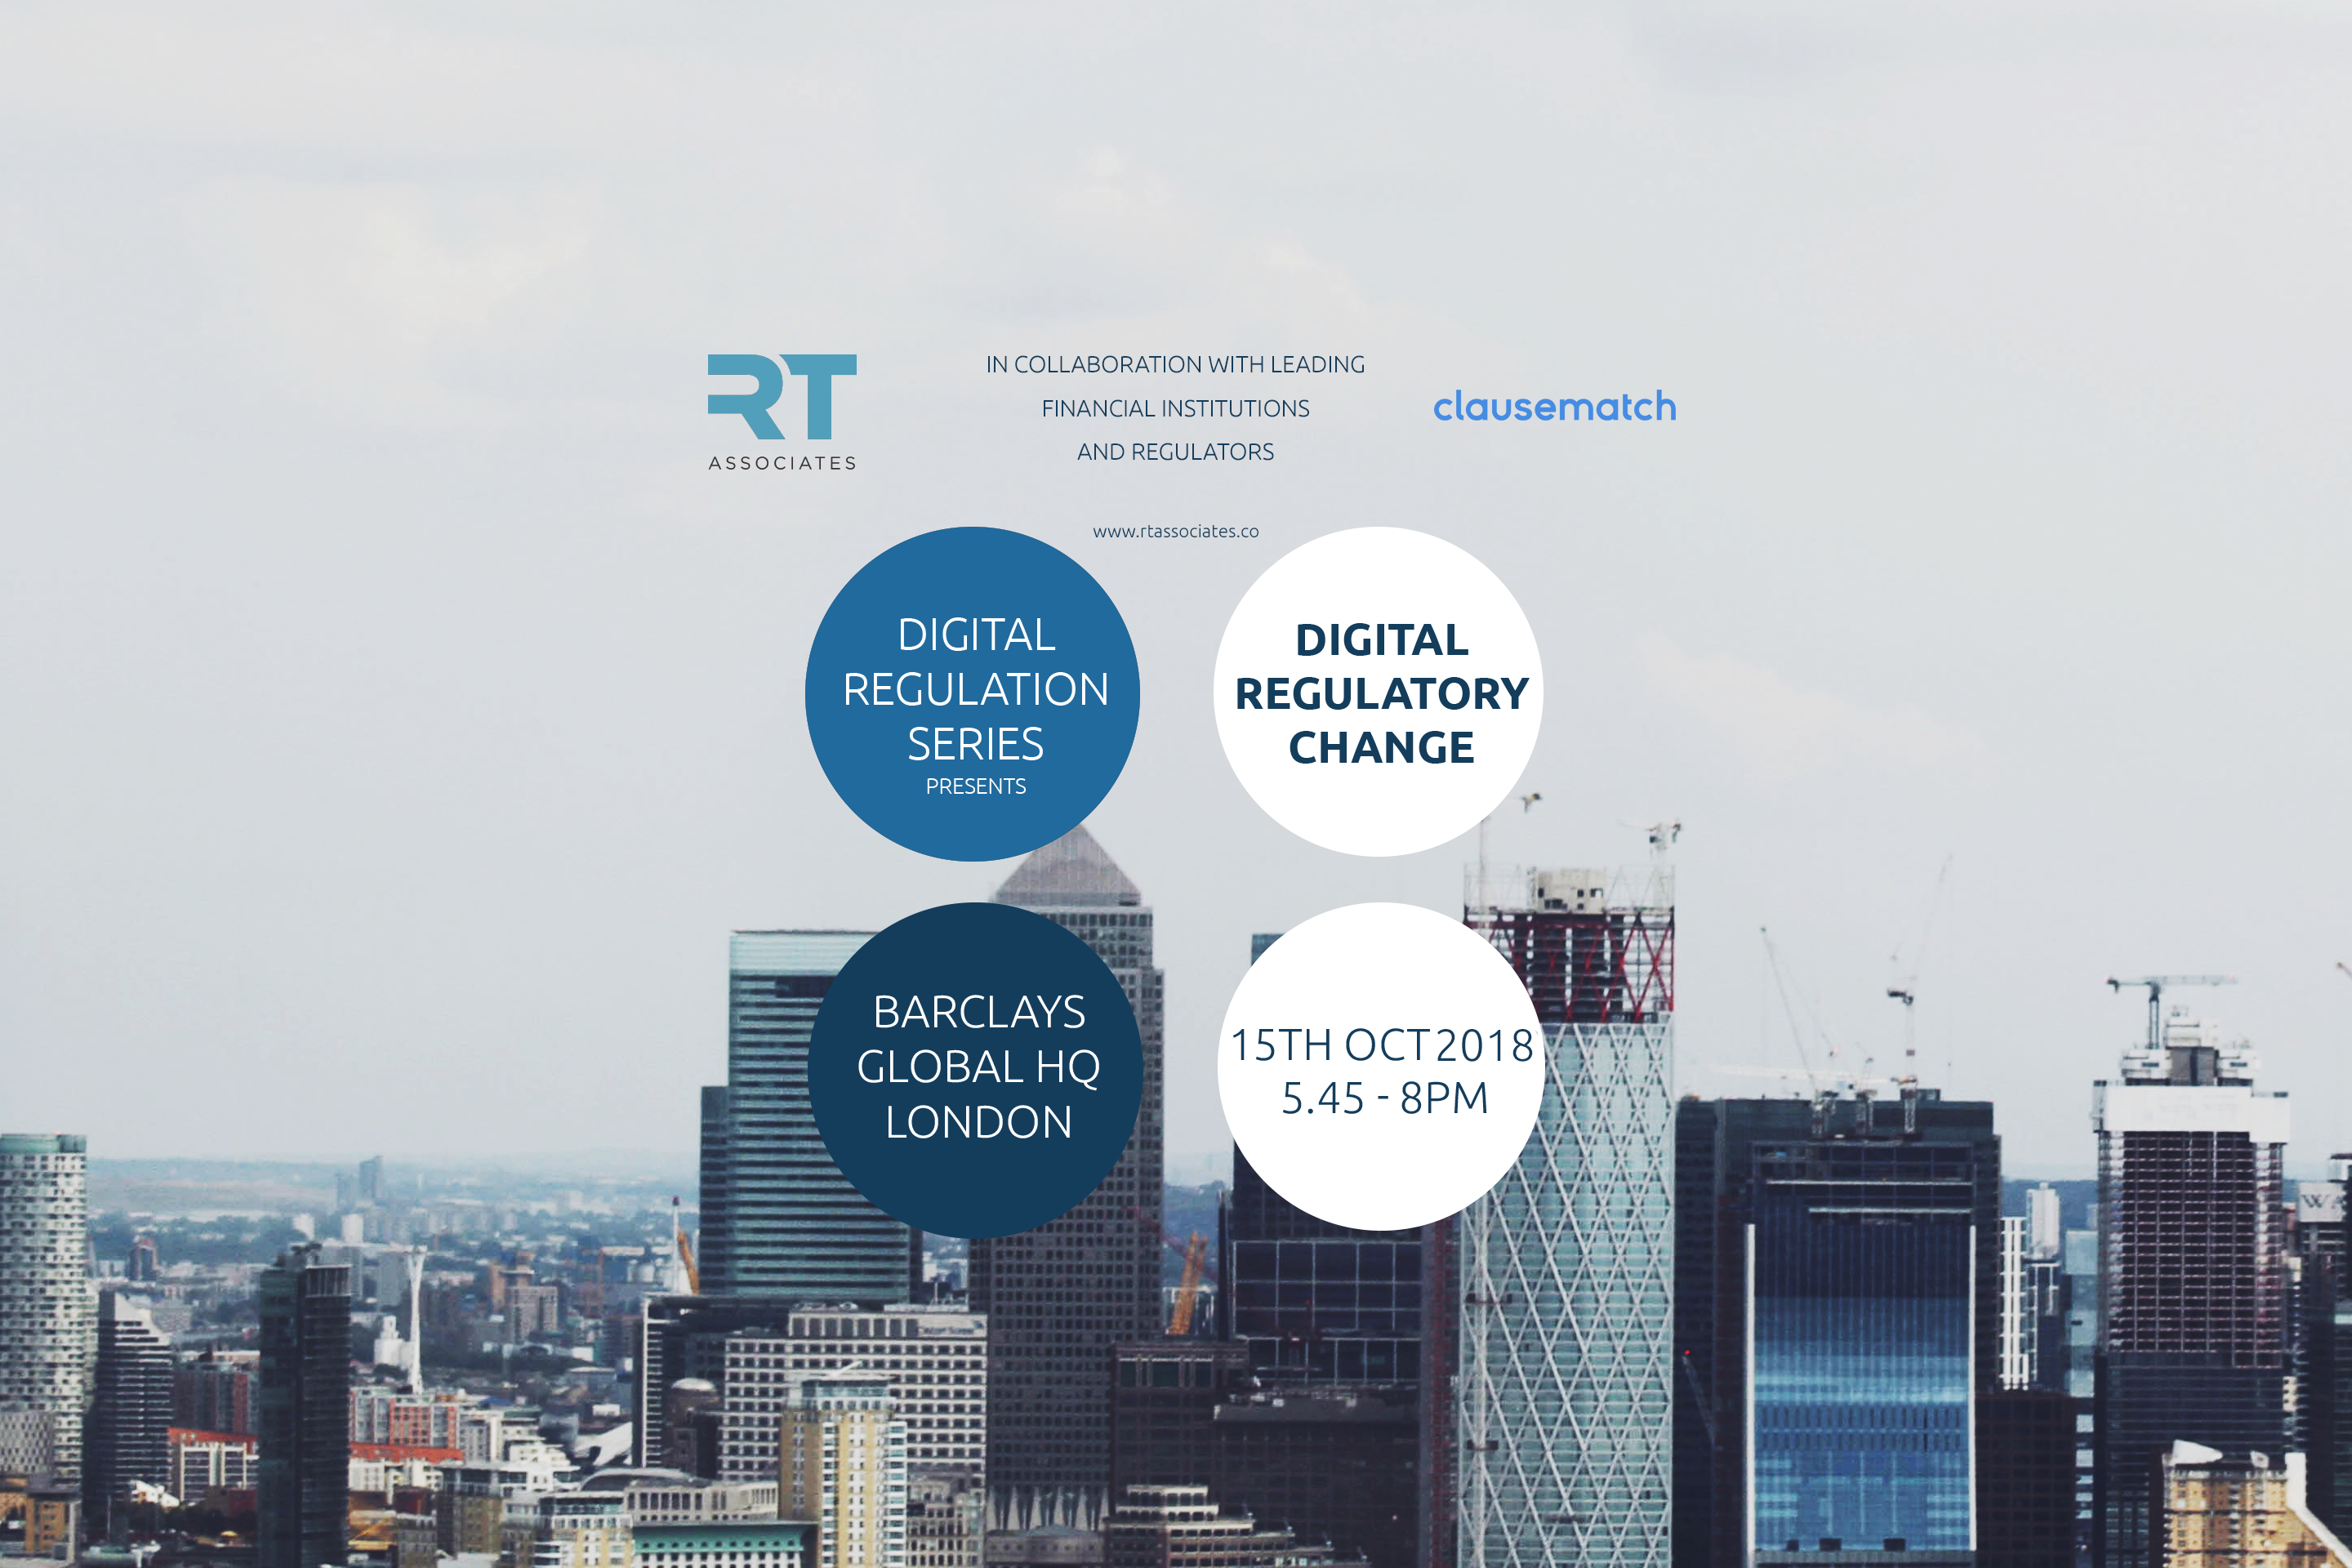 Digital Regulatory Change - The international series - london